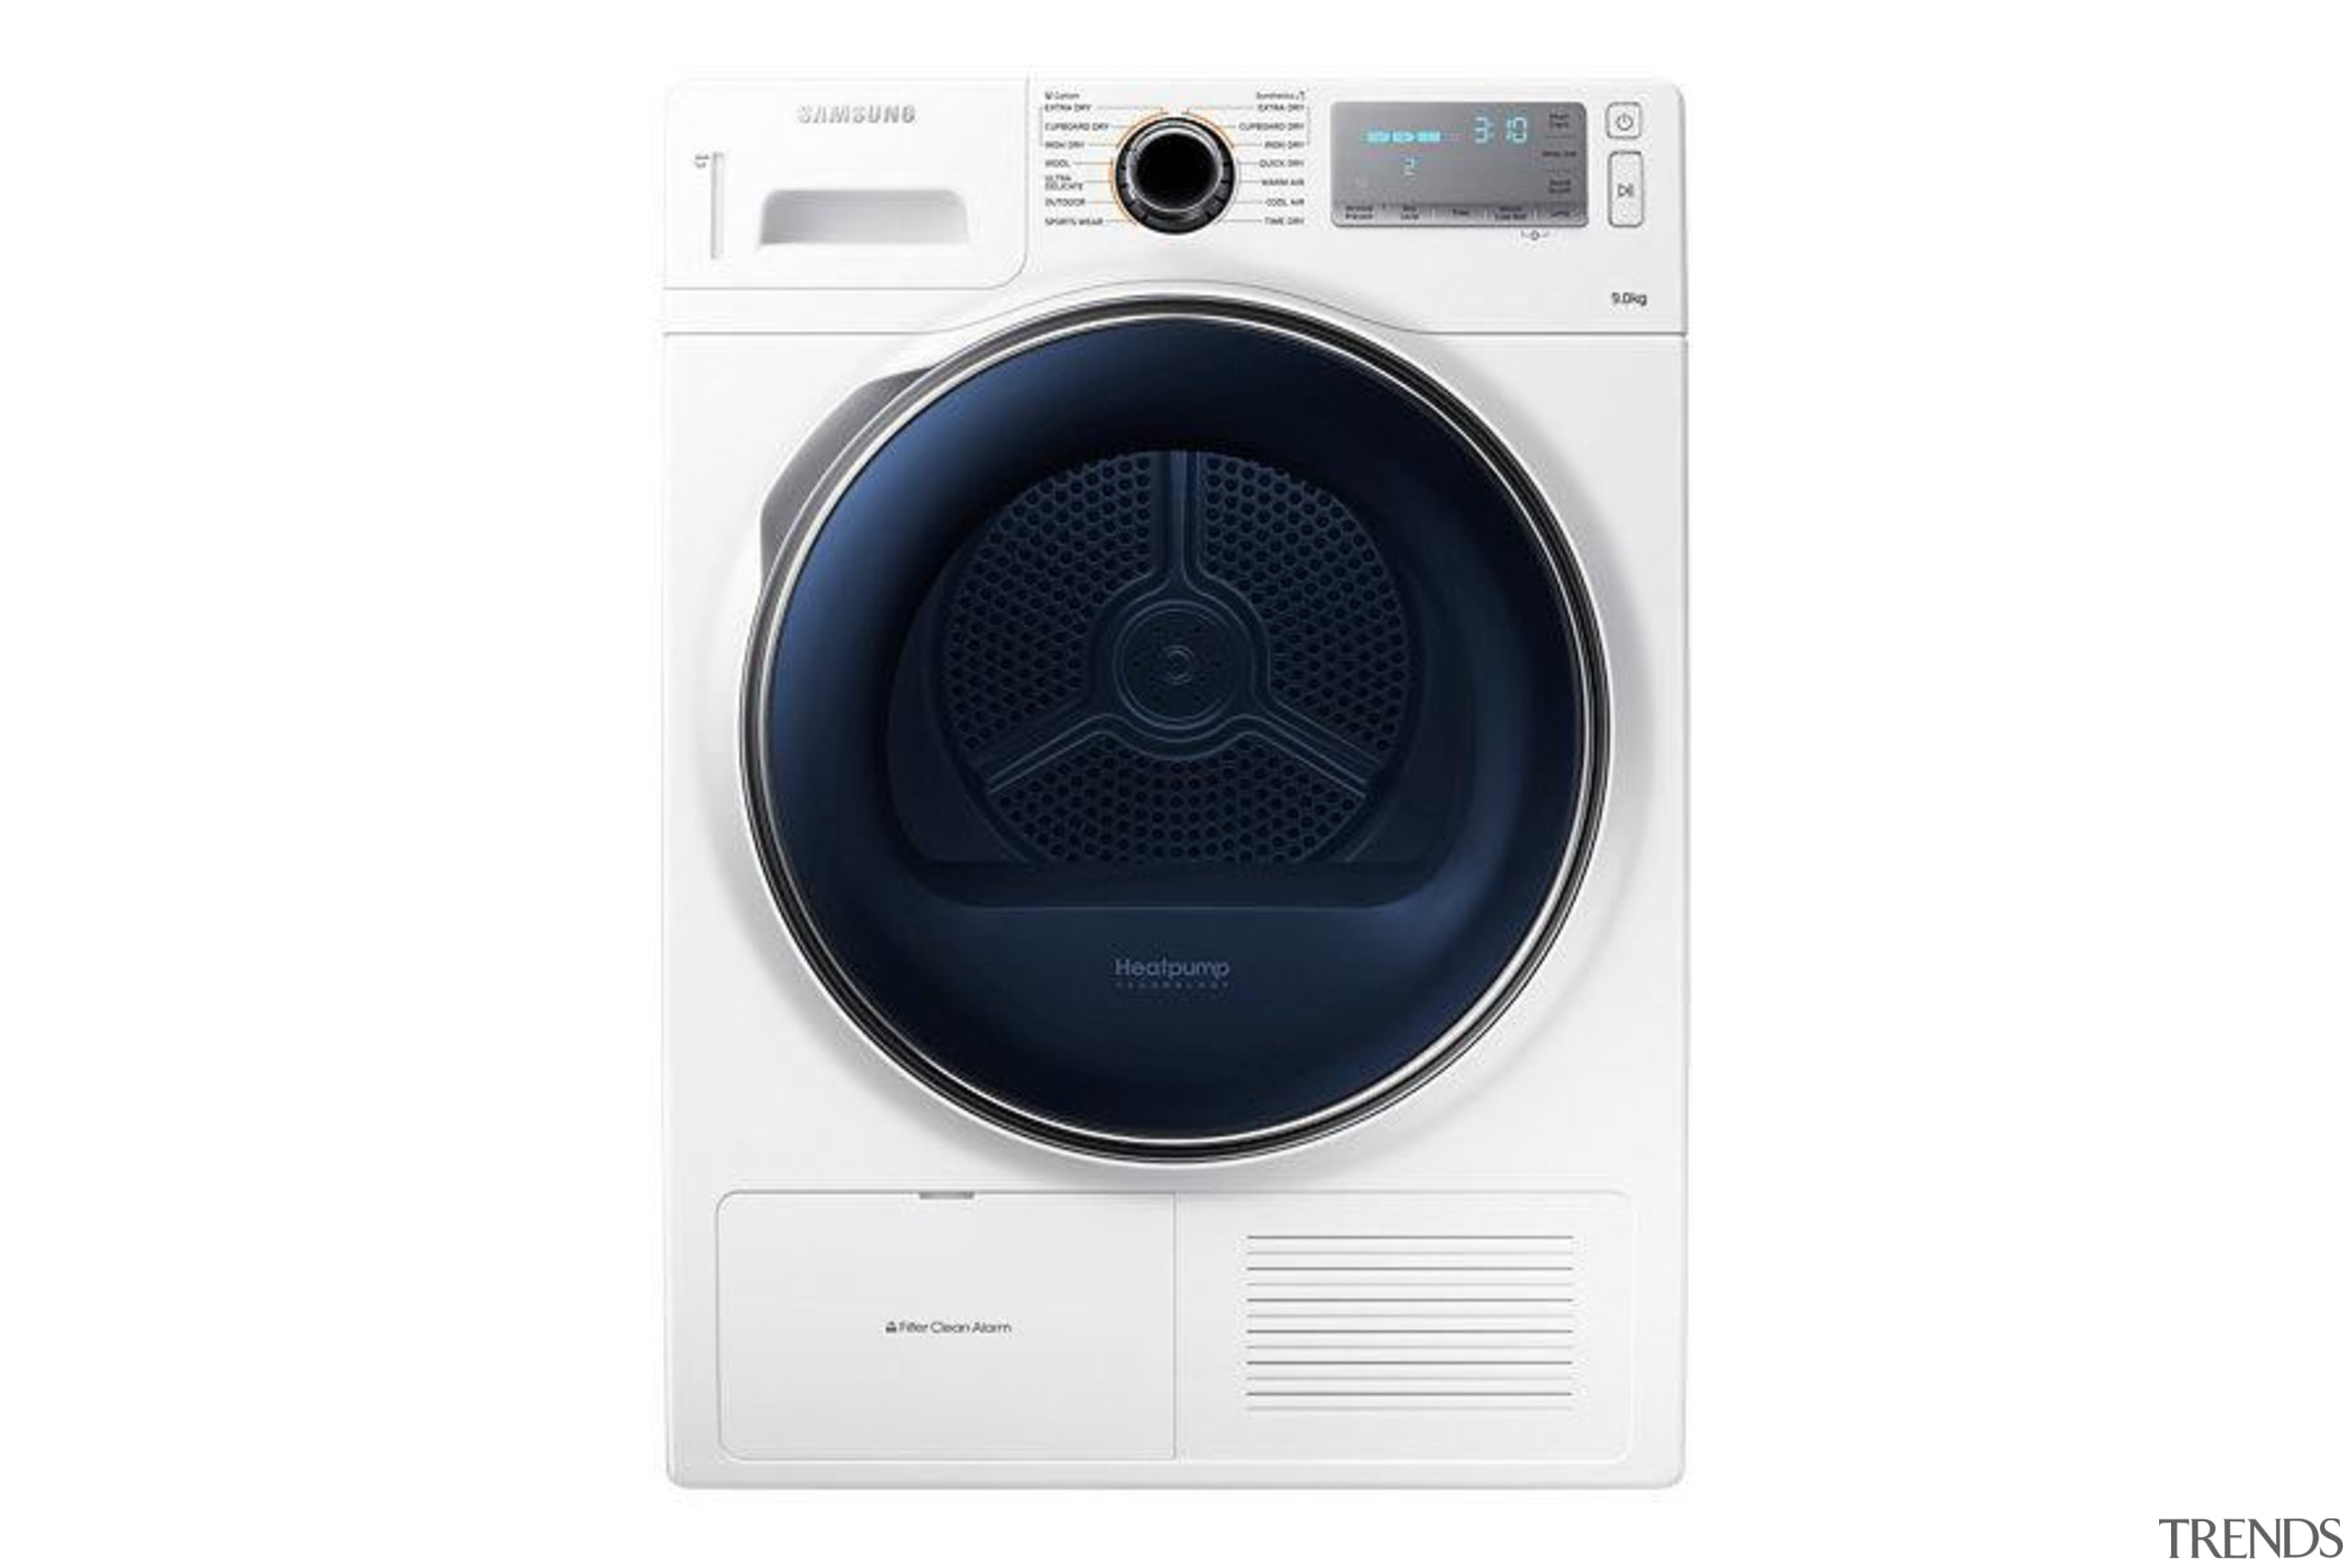 Laundry- Dryer DV90H8000HW/SADesigned to look as good as clothes dryer, electronics, home appliance, major appliance, product, product design, sound box, white